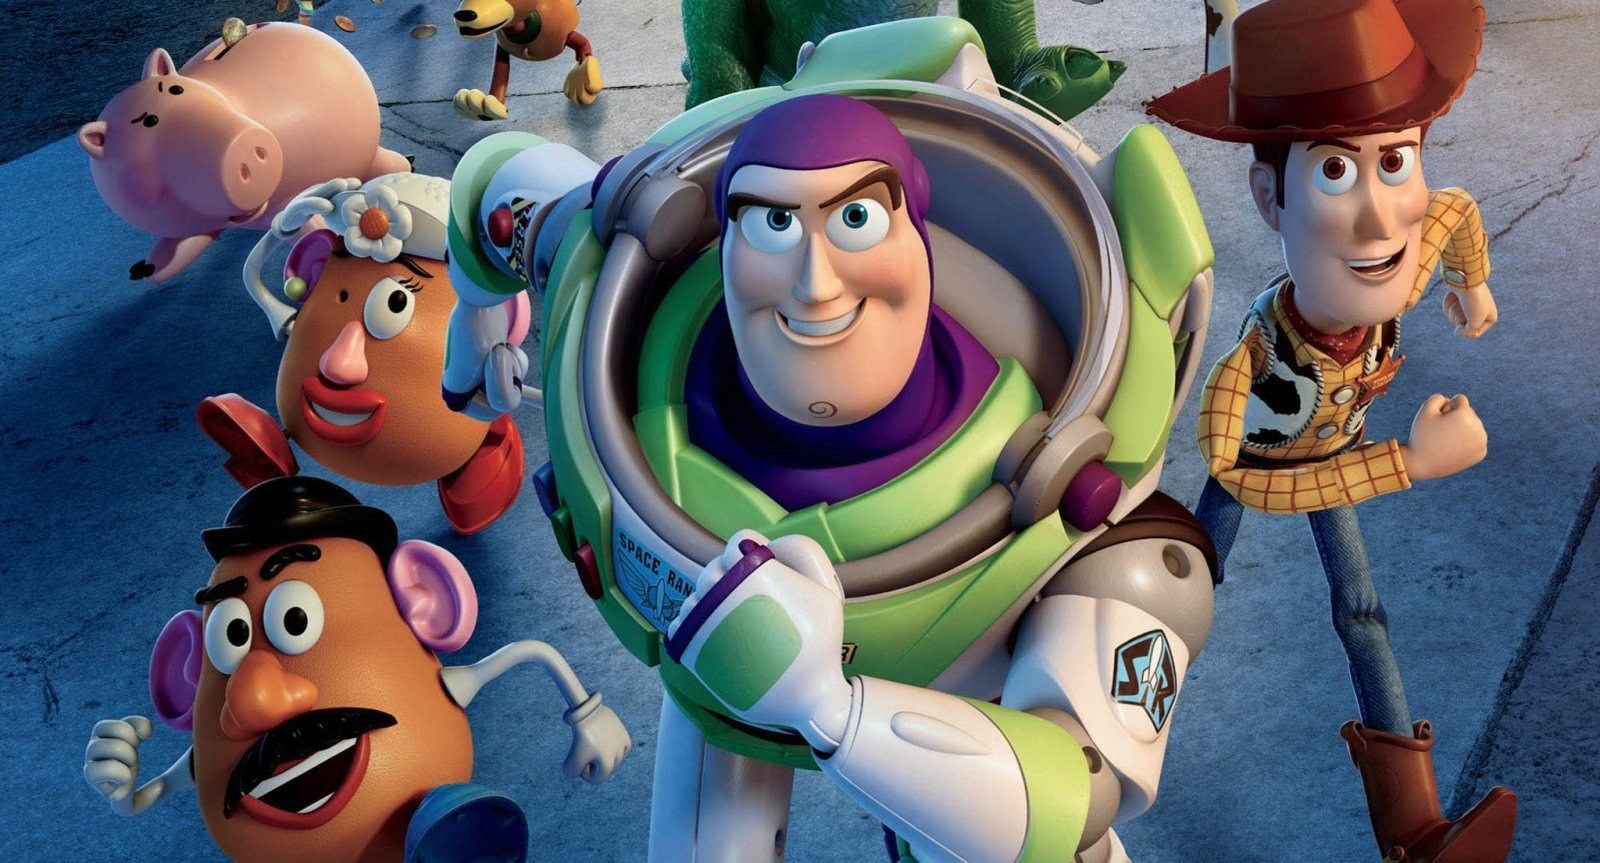 Did Disney Confirm The Pixar Theory? – The Pixar Detectives